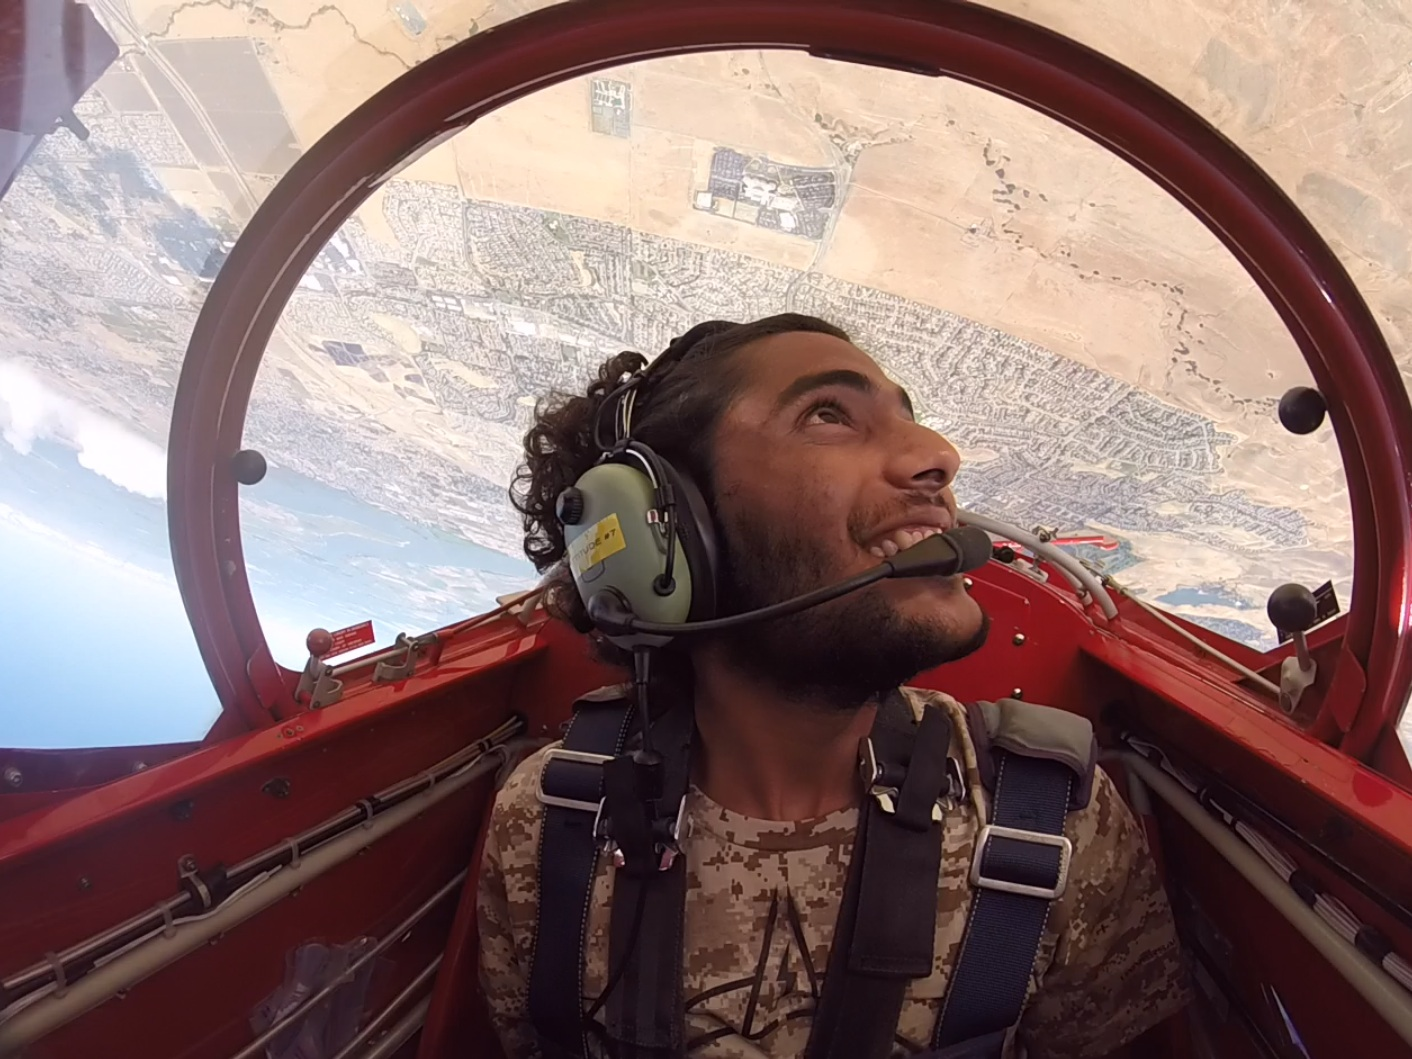 Aerobatics - No previous experience necessary.You take the controls of the airplane and learn how to fly loops, rolls, inverted and more.